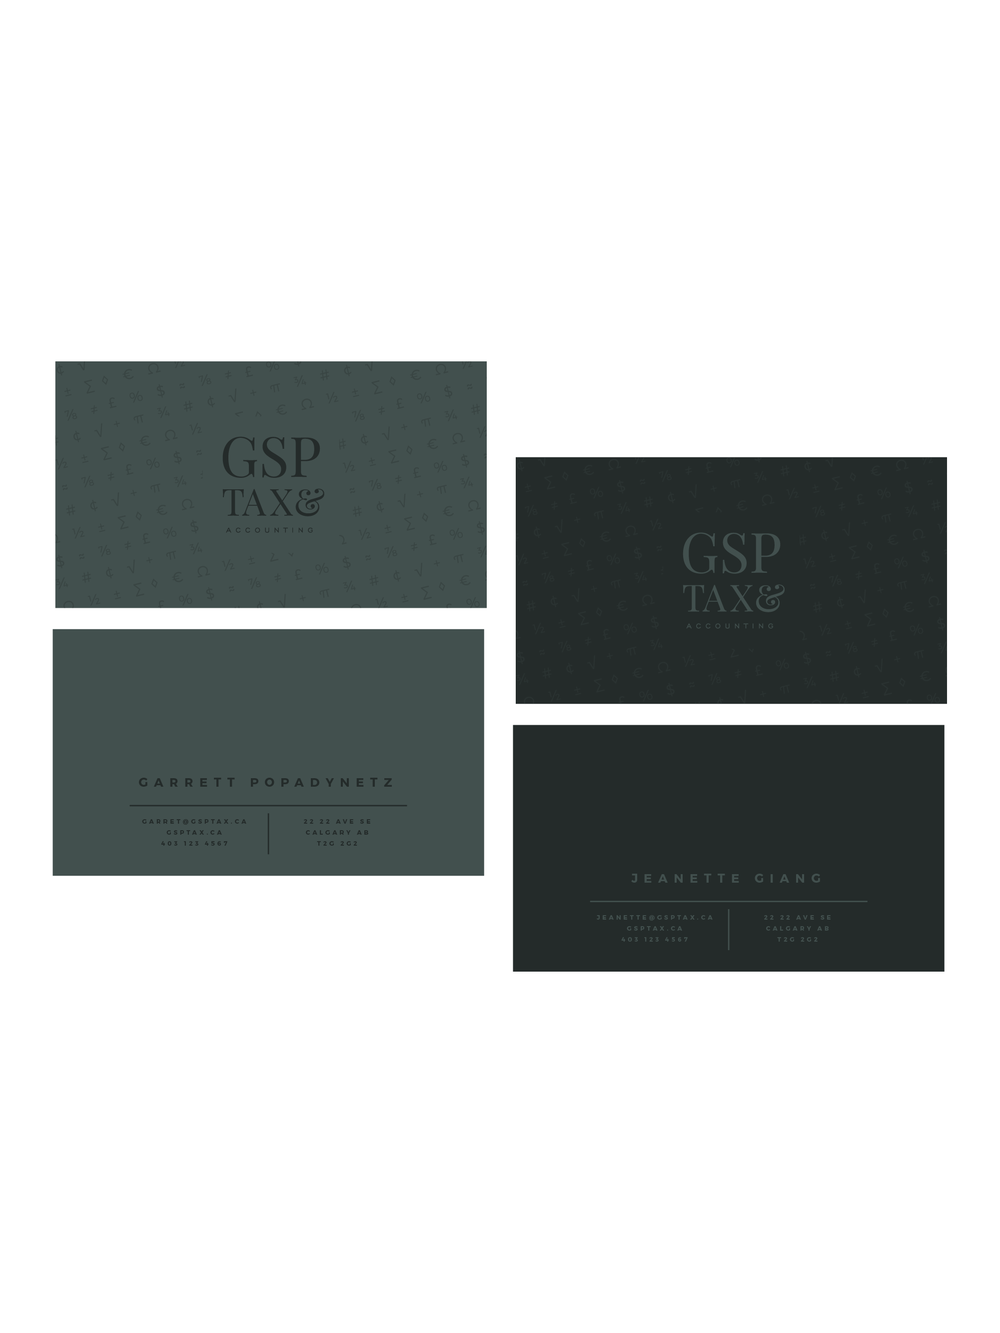 GSP Accounting Logo + Business Card Design | Trout + Taylor www.troutandtaylor.com